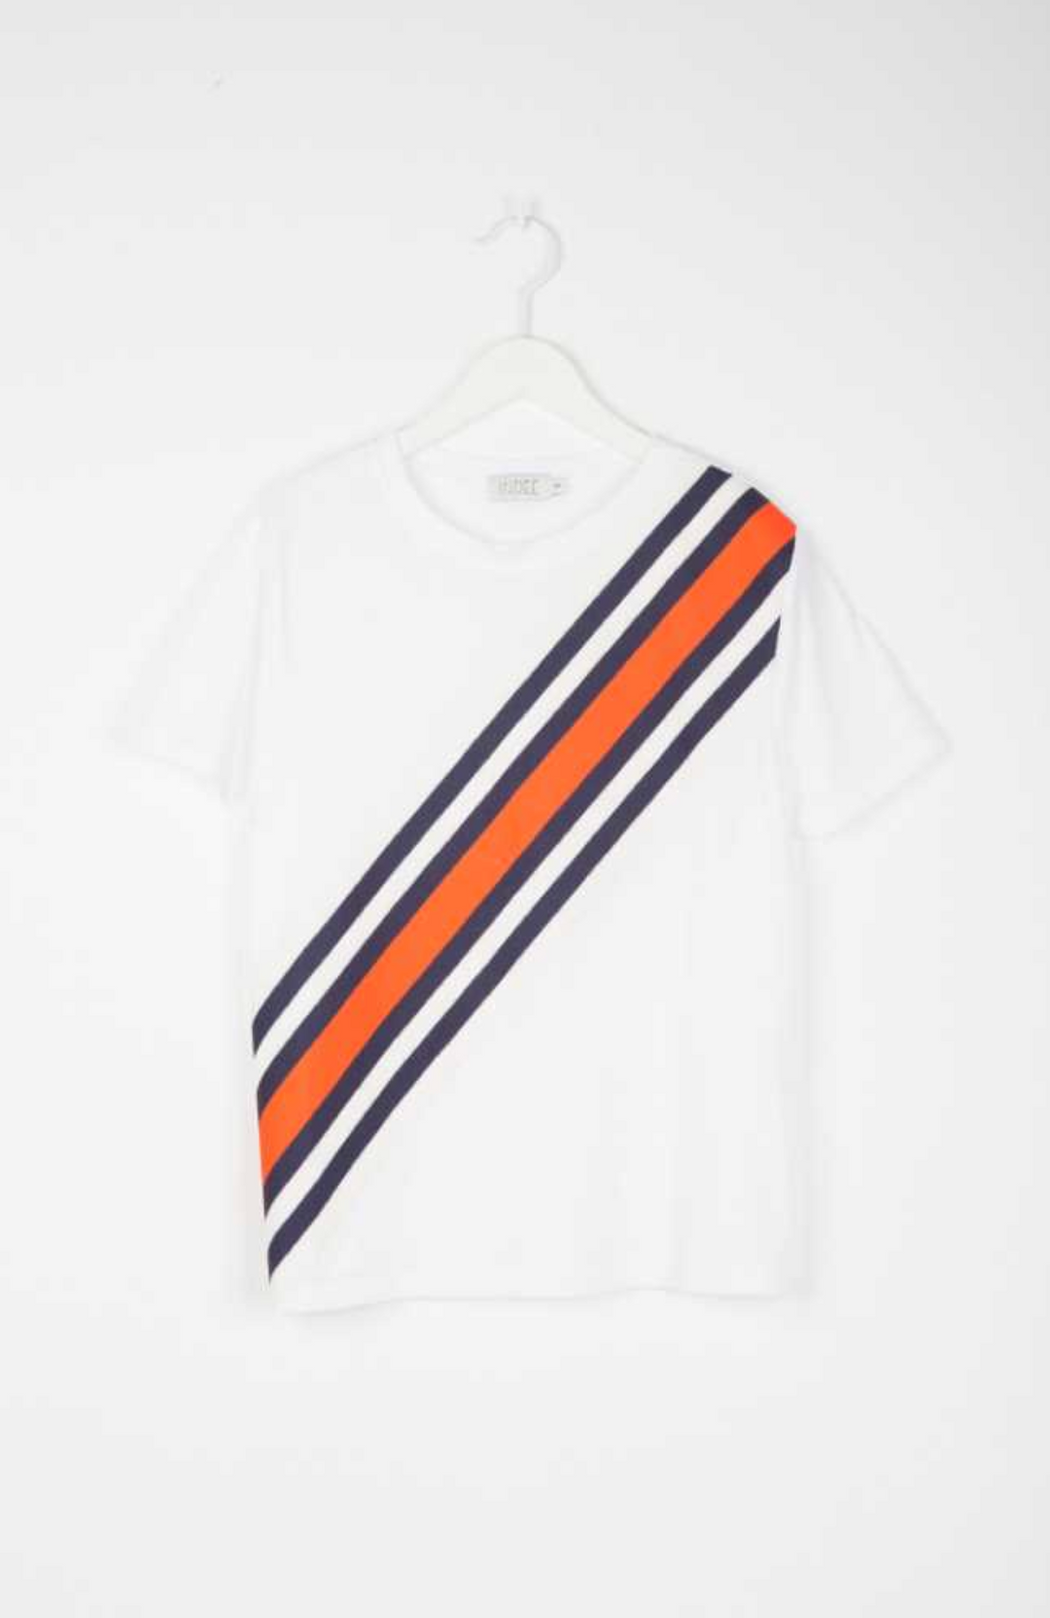 FANTASTIC LINES WHITE T-SHIRT